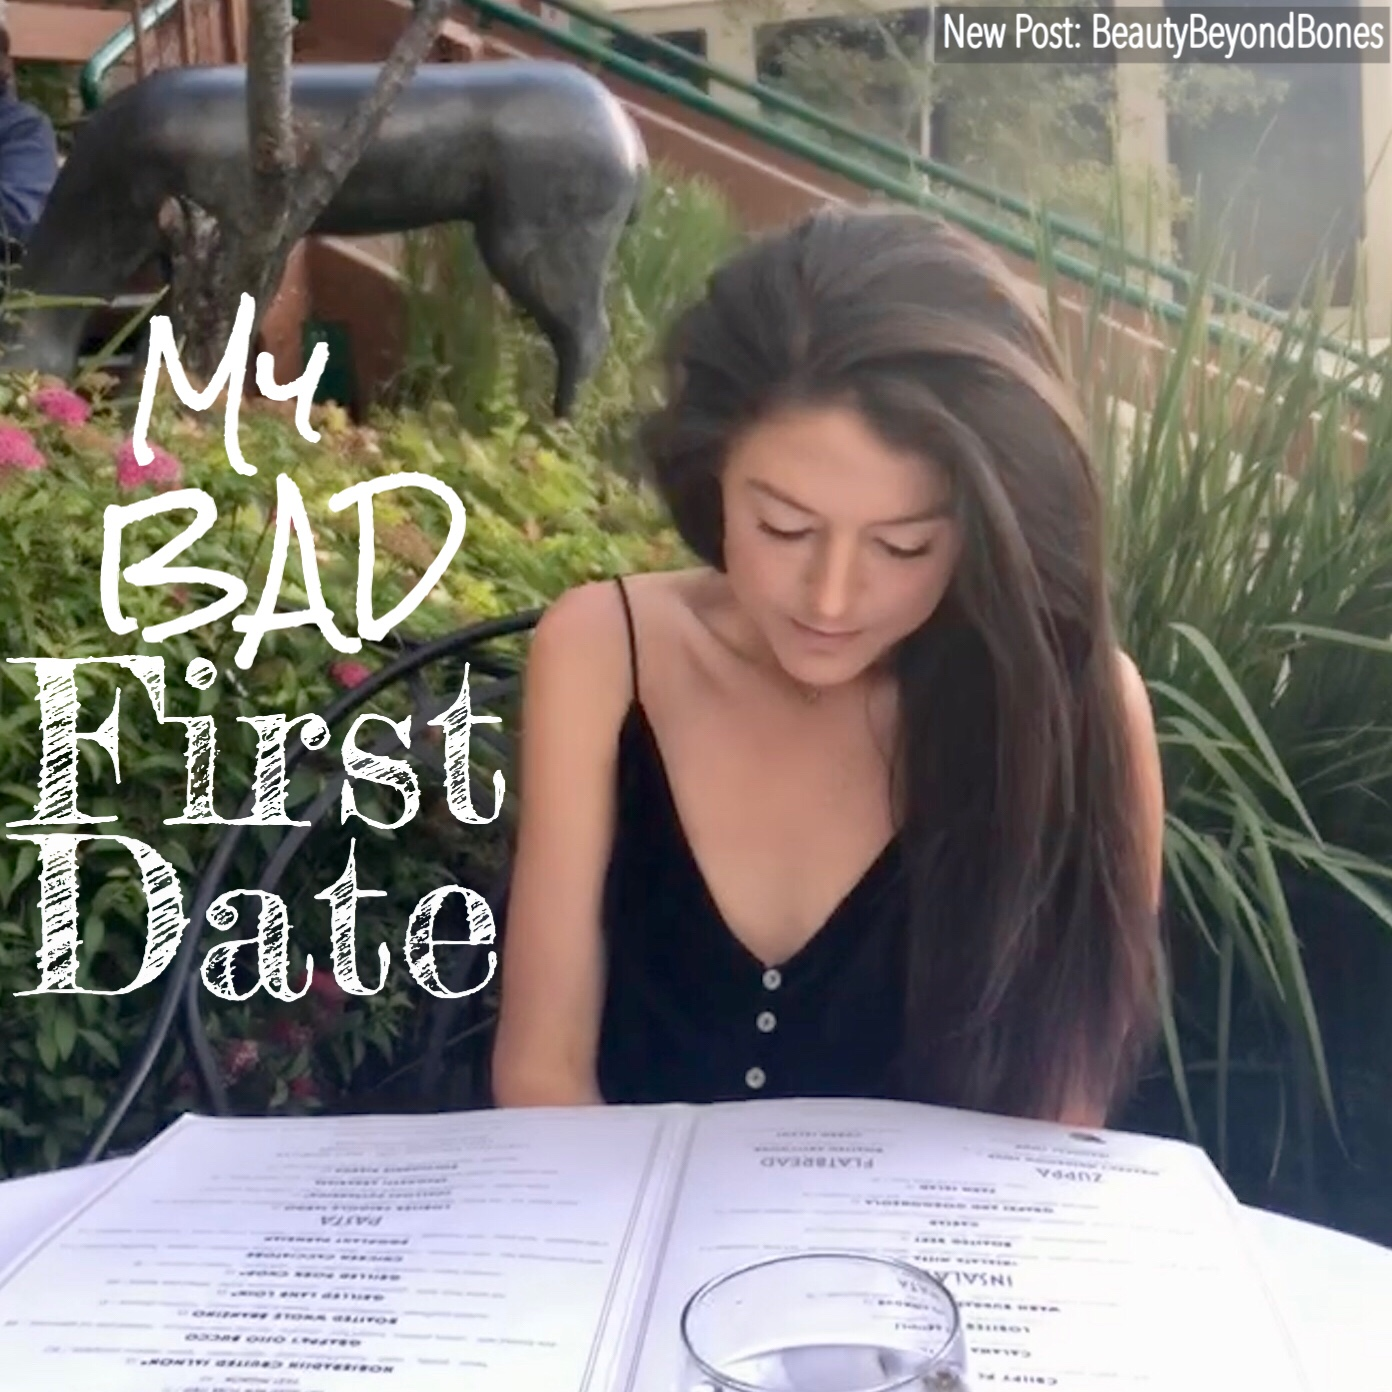 My BAD First Date